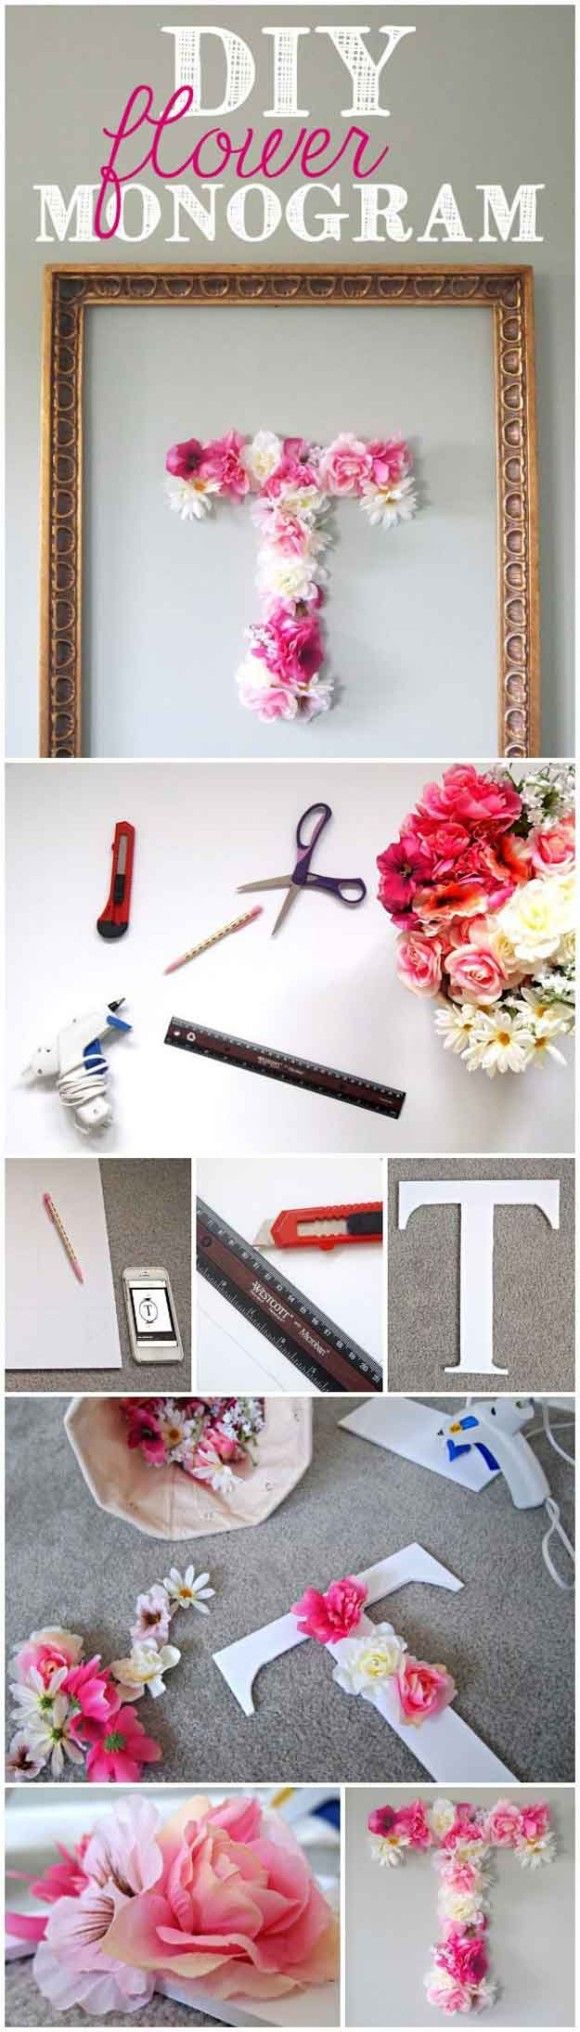 Bedroom Decor Diy Ideas best 25+ teen room decor ideas on pinterest | diy bedroom